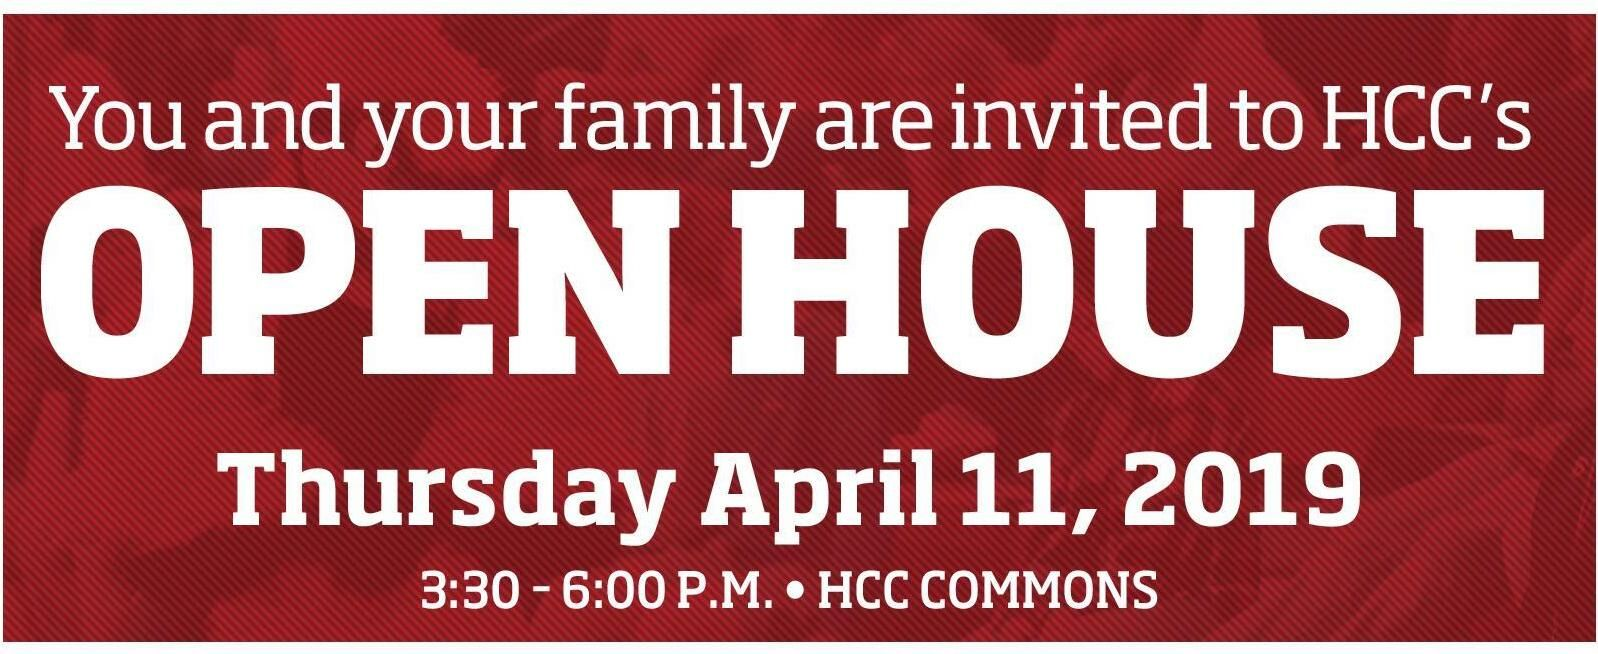 HCC Open House - April 18th!